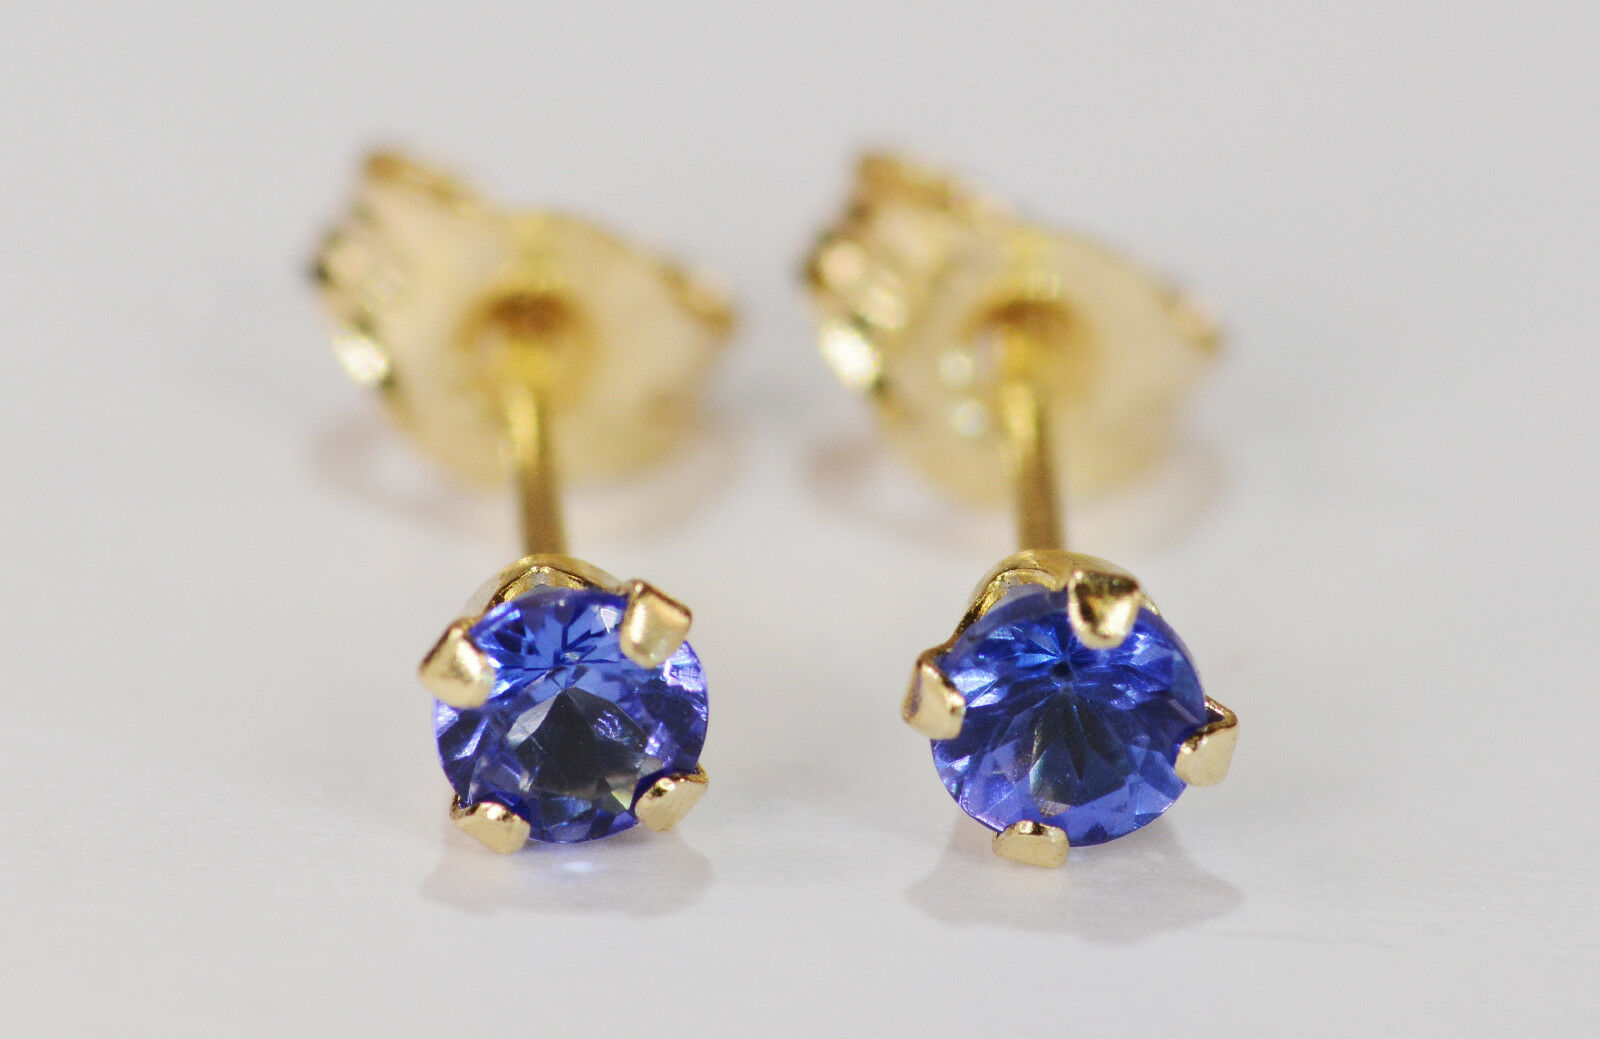 BEENJEWELED PETITE GENUINE NATURAL MINED TANZANITE EARRINGS 14 KT YLW gold3MM